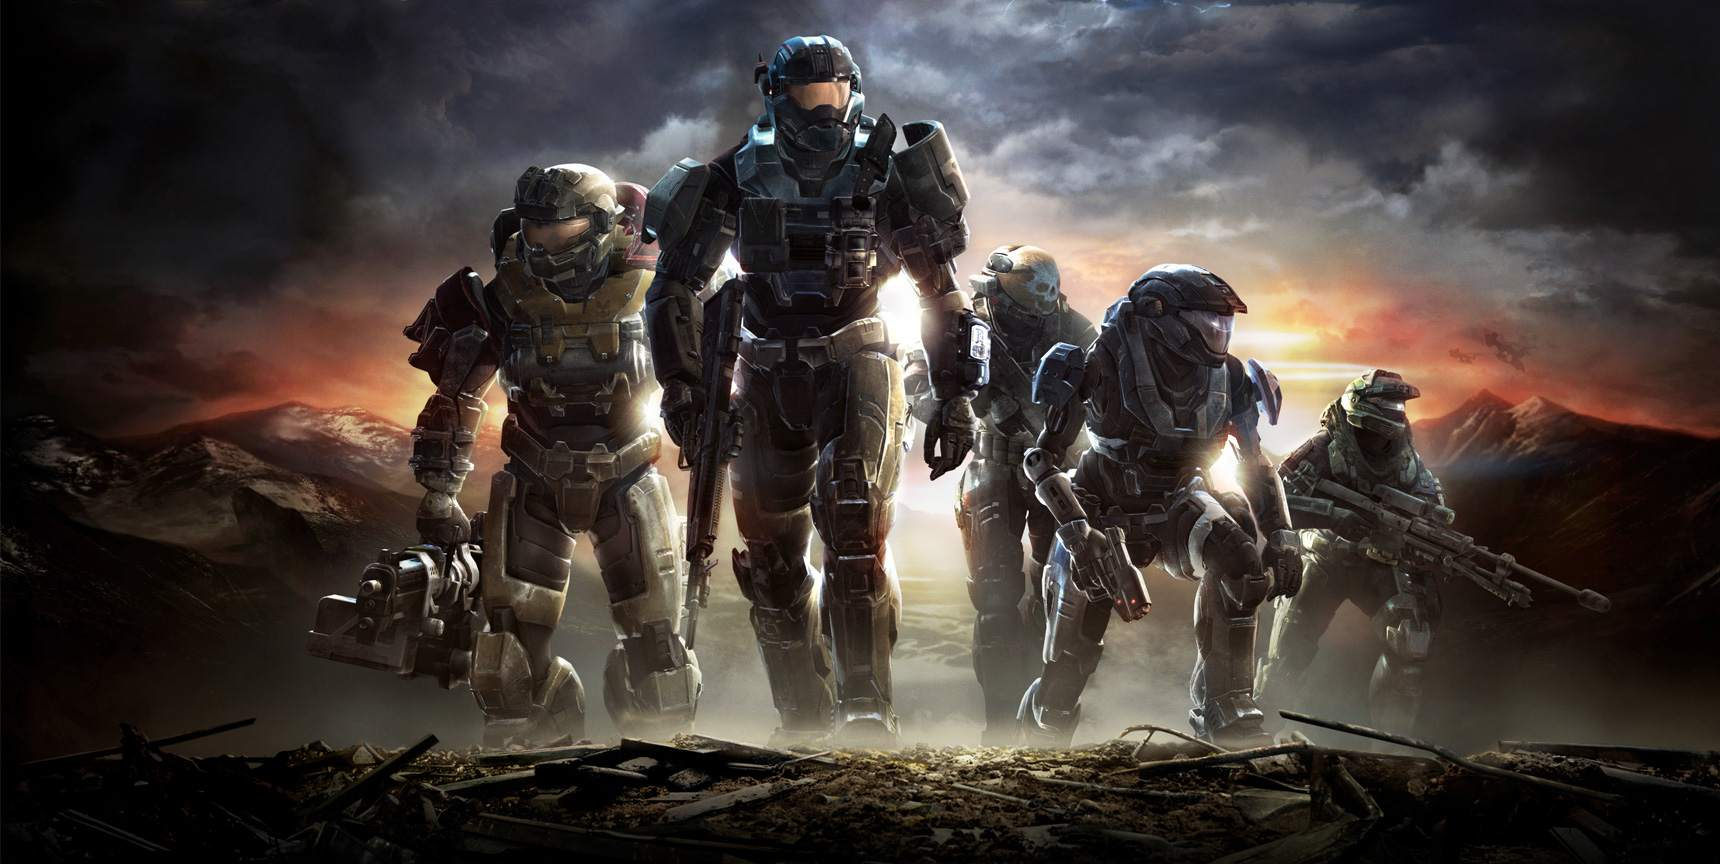 Halo_Reach_-_Visual_ID